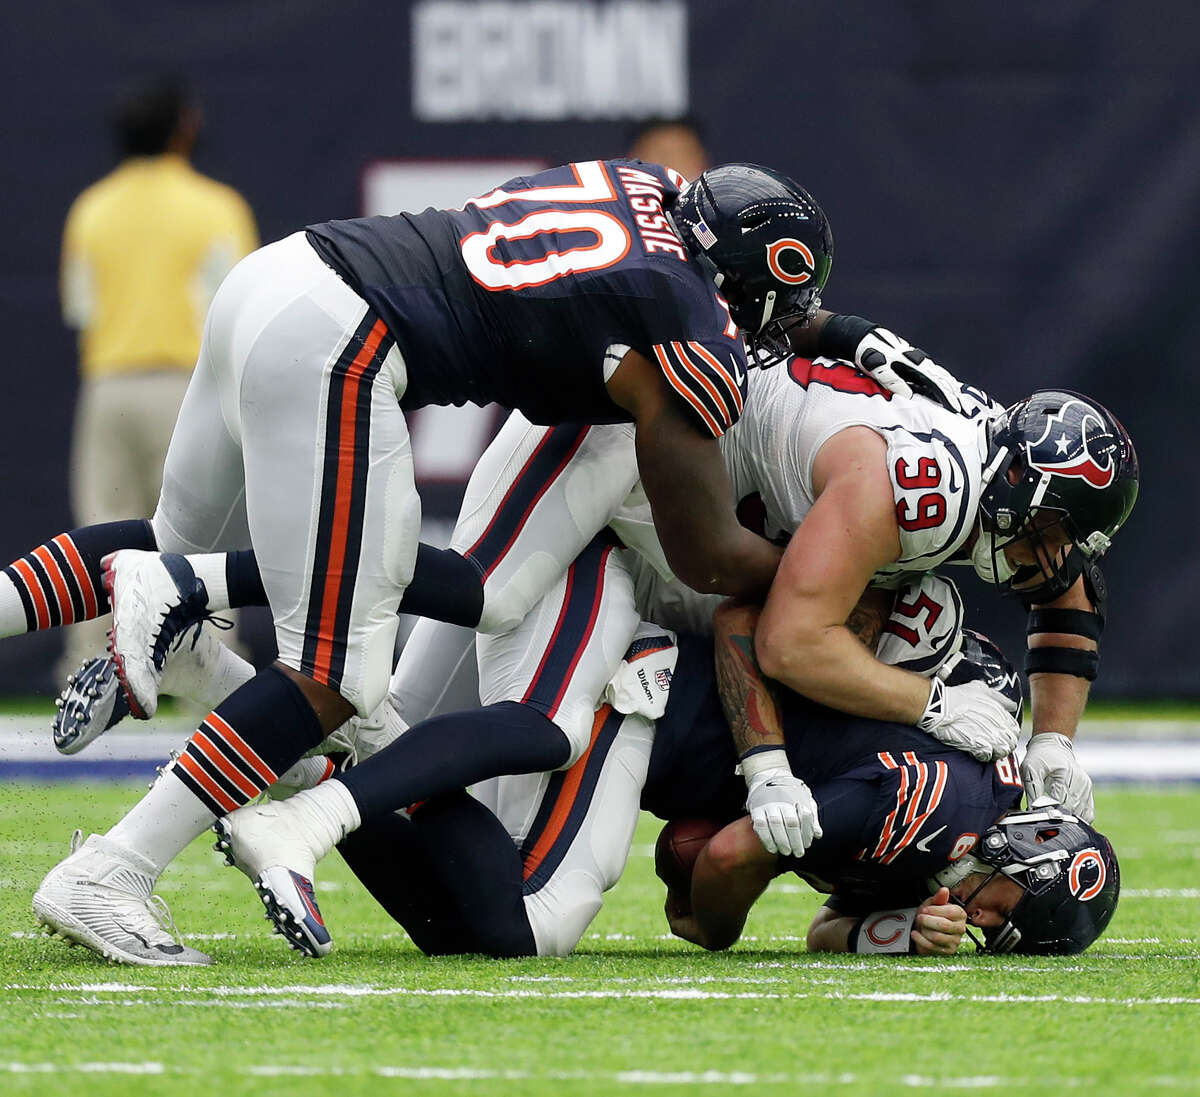 The Bears' Jay Cutler, bottom, is sacked by Texans outside linebacker John Simon (51) and defensive end J.J. Watt (99). The Texans finished with five sacks in Sunday's 23-14 victory.